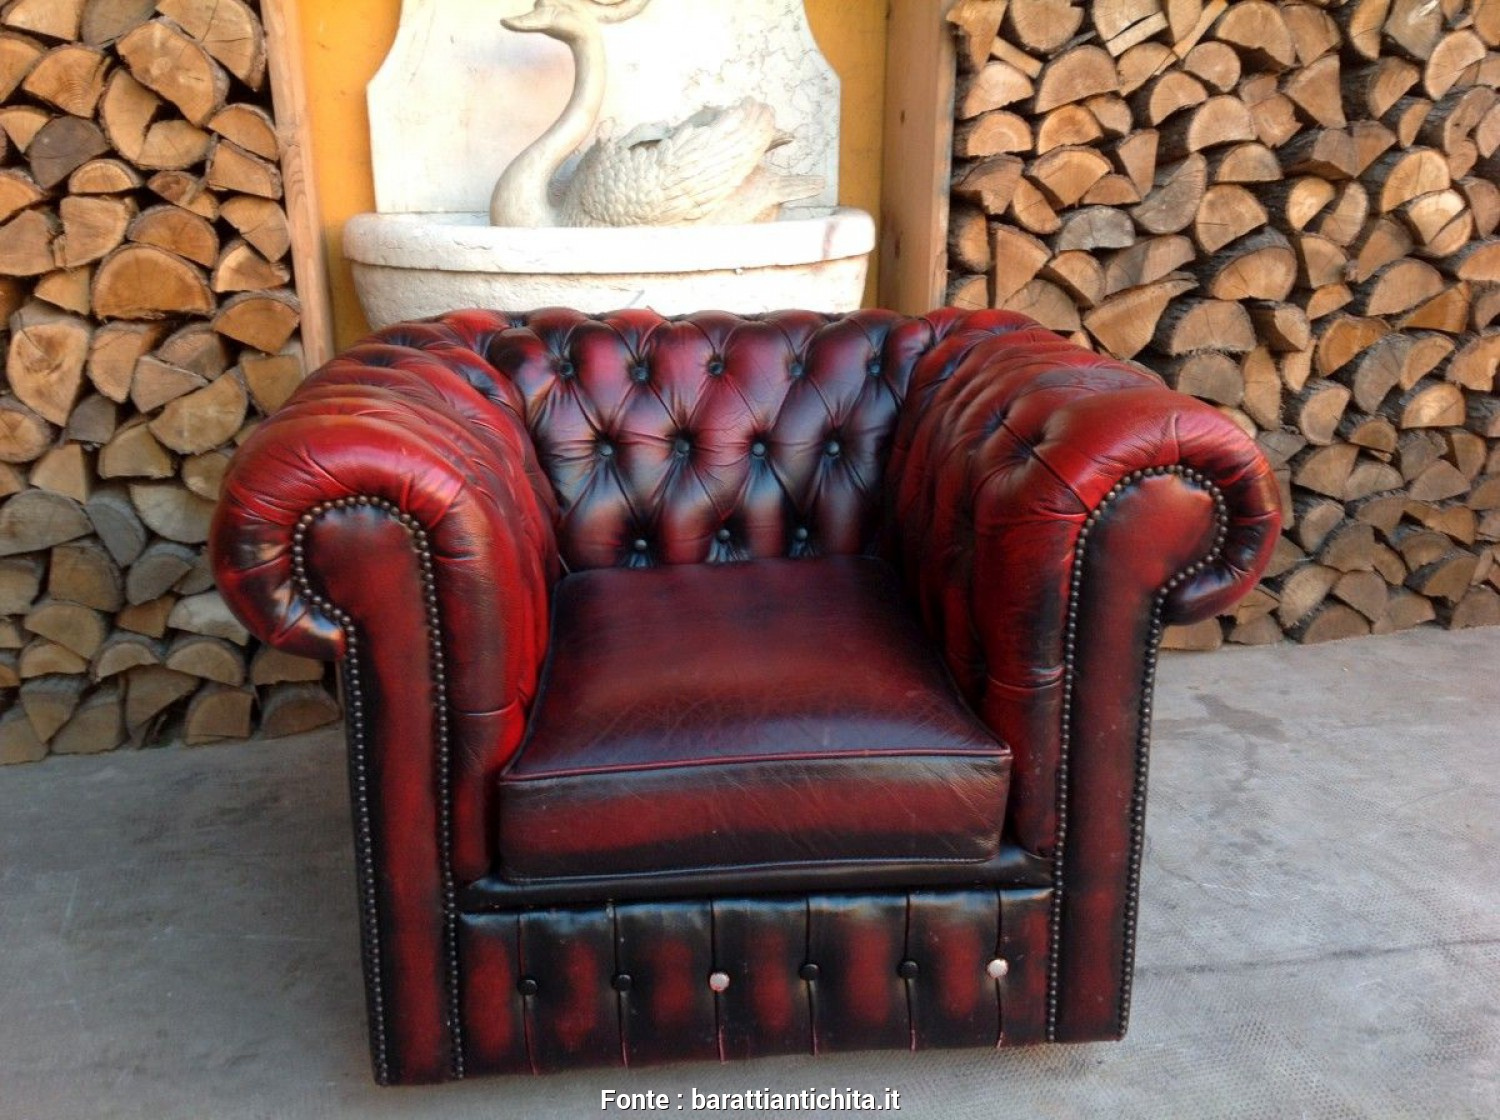 Vendo Divano E Poltrone Chesterfield, Affascinante Poltrona Chesterfield Club Originale Inglese Vintage In Vera Pelle Color Bordeaux